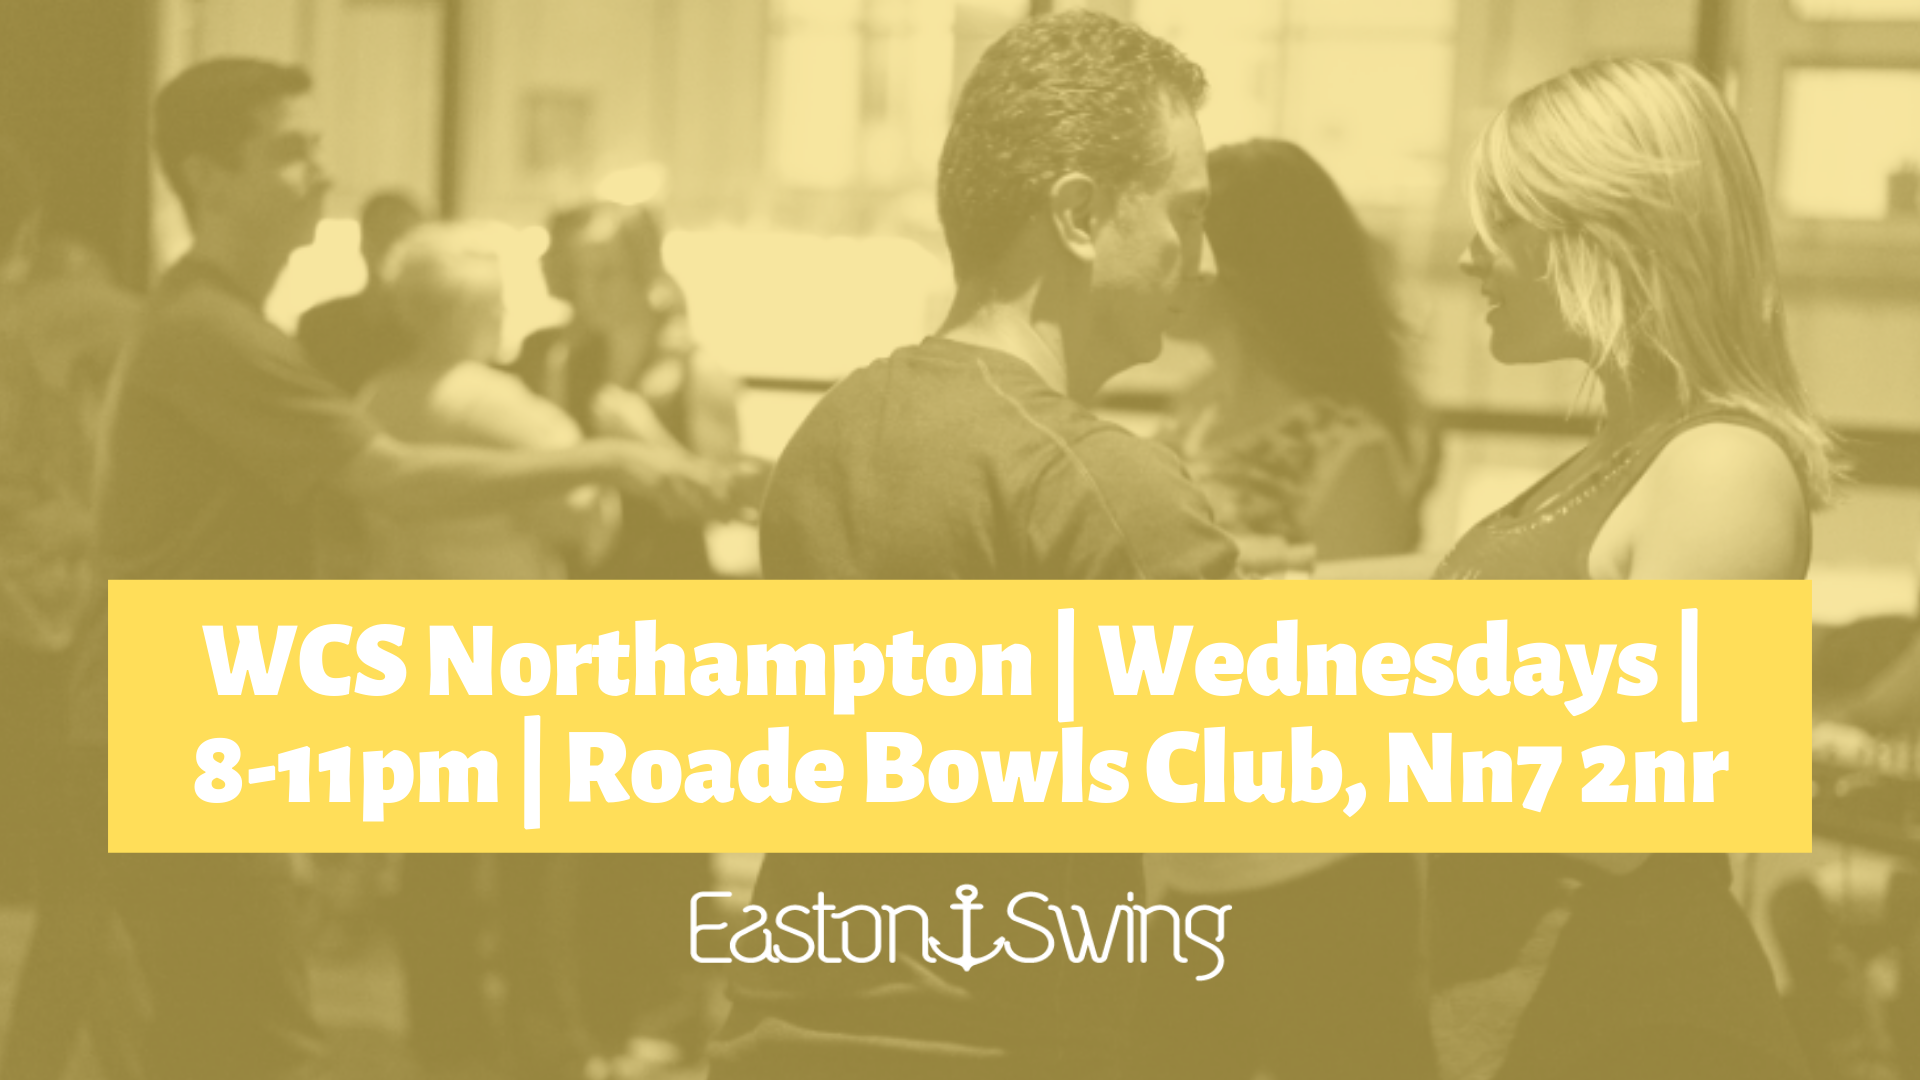 a photograph of people dancing West Coast Swing with a yellow filter overlaid and text regarding a weekly class in northampton on wednesdays